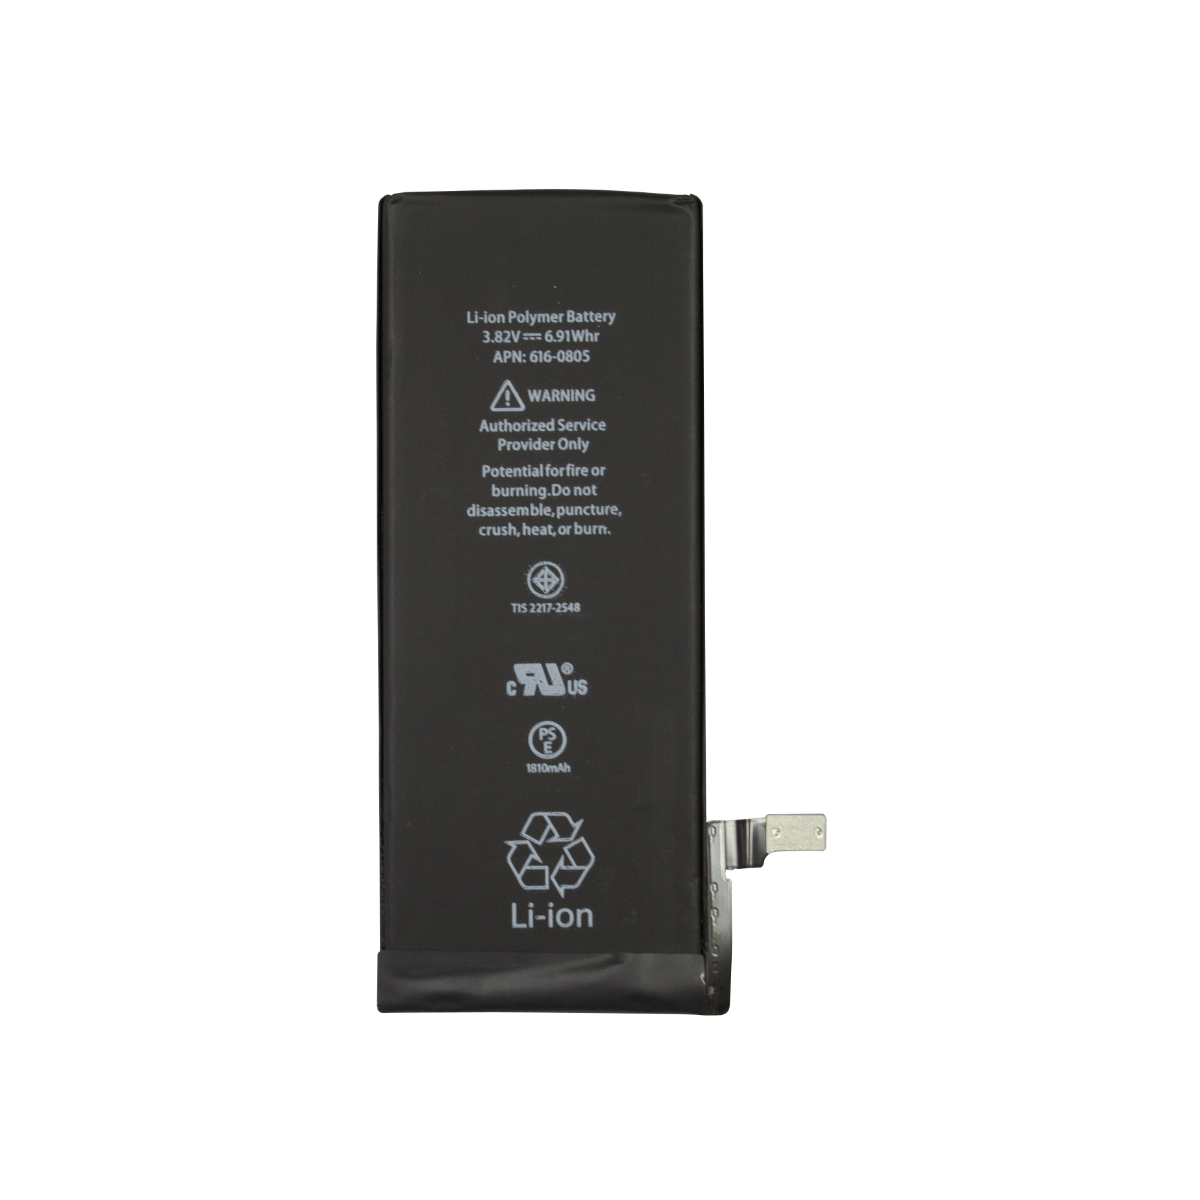 Iphone battery png